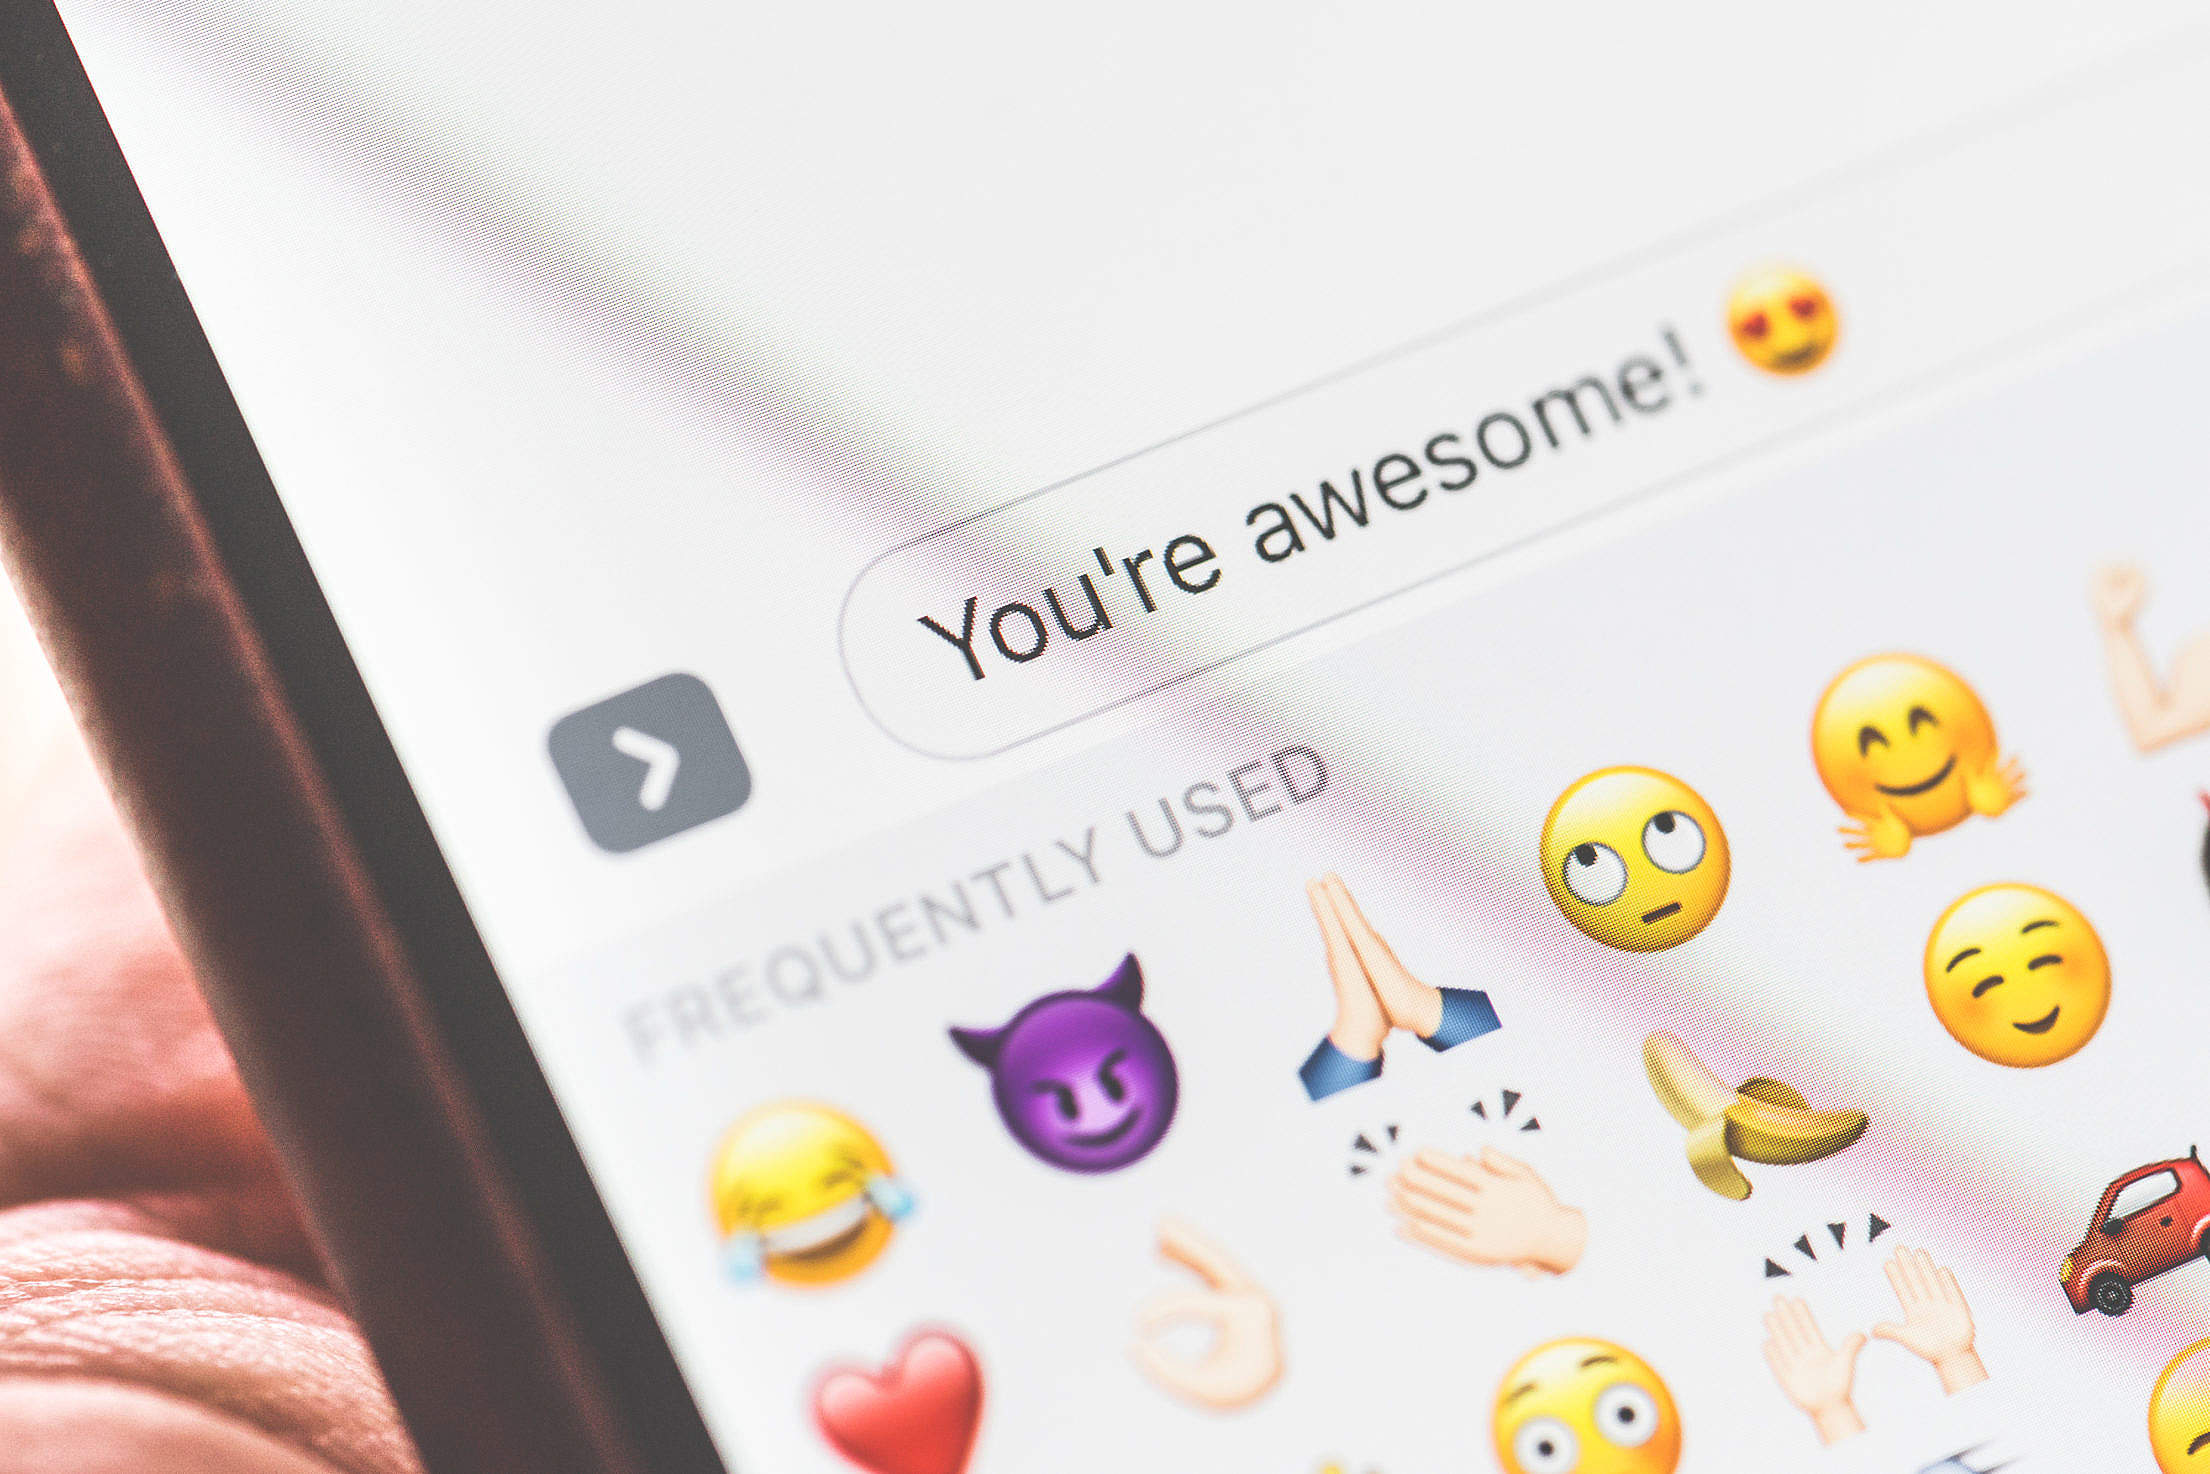 iPhone Emoji Smartphone Messaging App Close Up Free Stock Photo